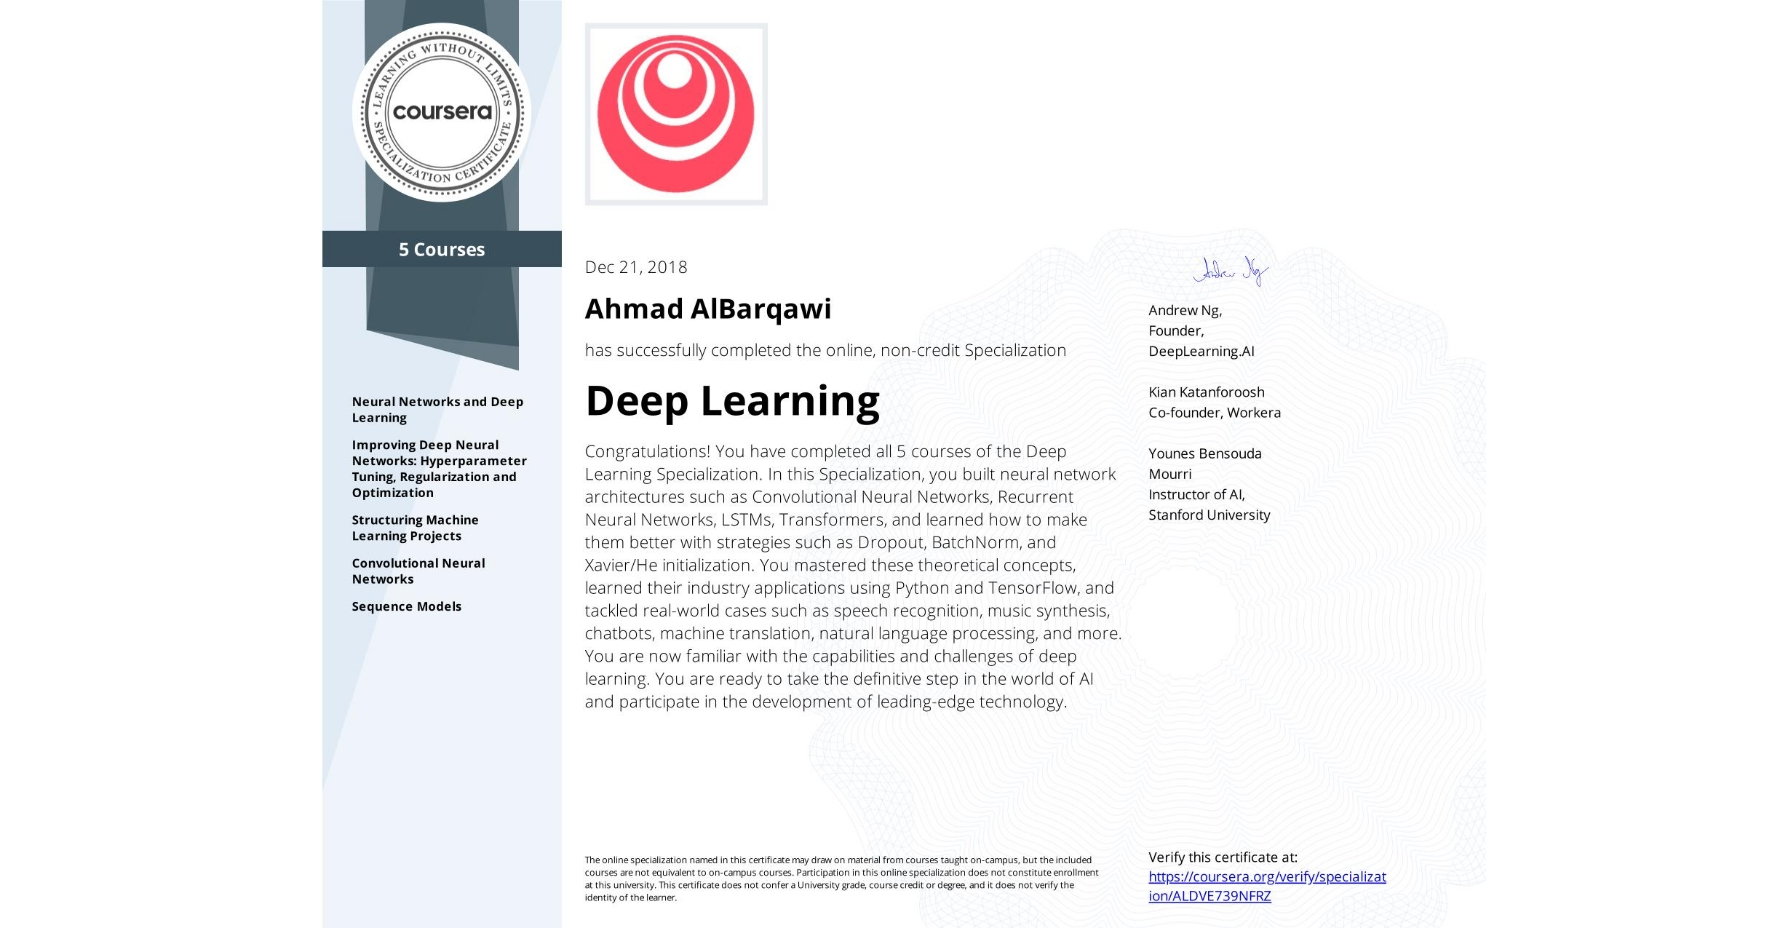 View certificate for Ahmad AlBarqawi, Deep Learning, offered through Coursera. Congratulations! You have completed all five courses of the Deep Learning Specialization.  In this Specialization, you built neural network architectures such as Convolutional Neural Networks, Recurrent Neural Networks, LSTMs, Transformers and learned how to make them better with strategies such as Dropout, BatchNorm, Xavier/He initialization, and more. You mastered these theoretical concepts and their application using Python and TensorFlow and also tackled real-world case studies such as autonomous driving, sign language reading, music generation, computer vision, speech recognition, and natural language processing.   You're now familiar with the capabilities, challenges, and consequences of deep learning and are ready to participate in the development of leading-edge AI technology.